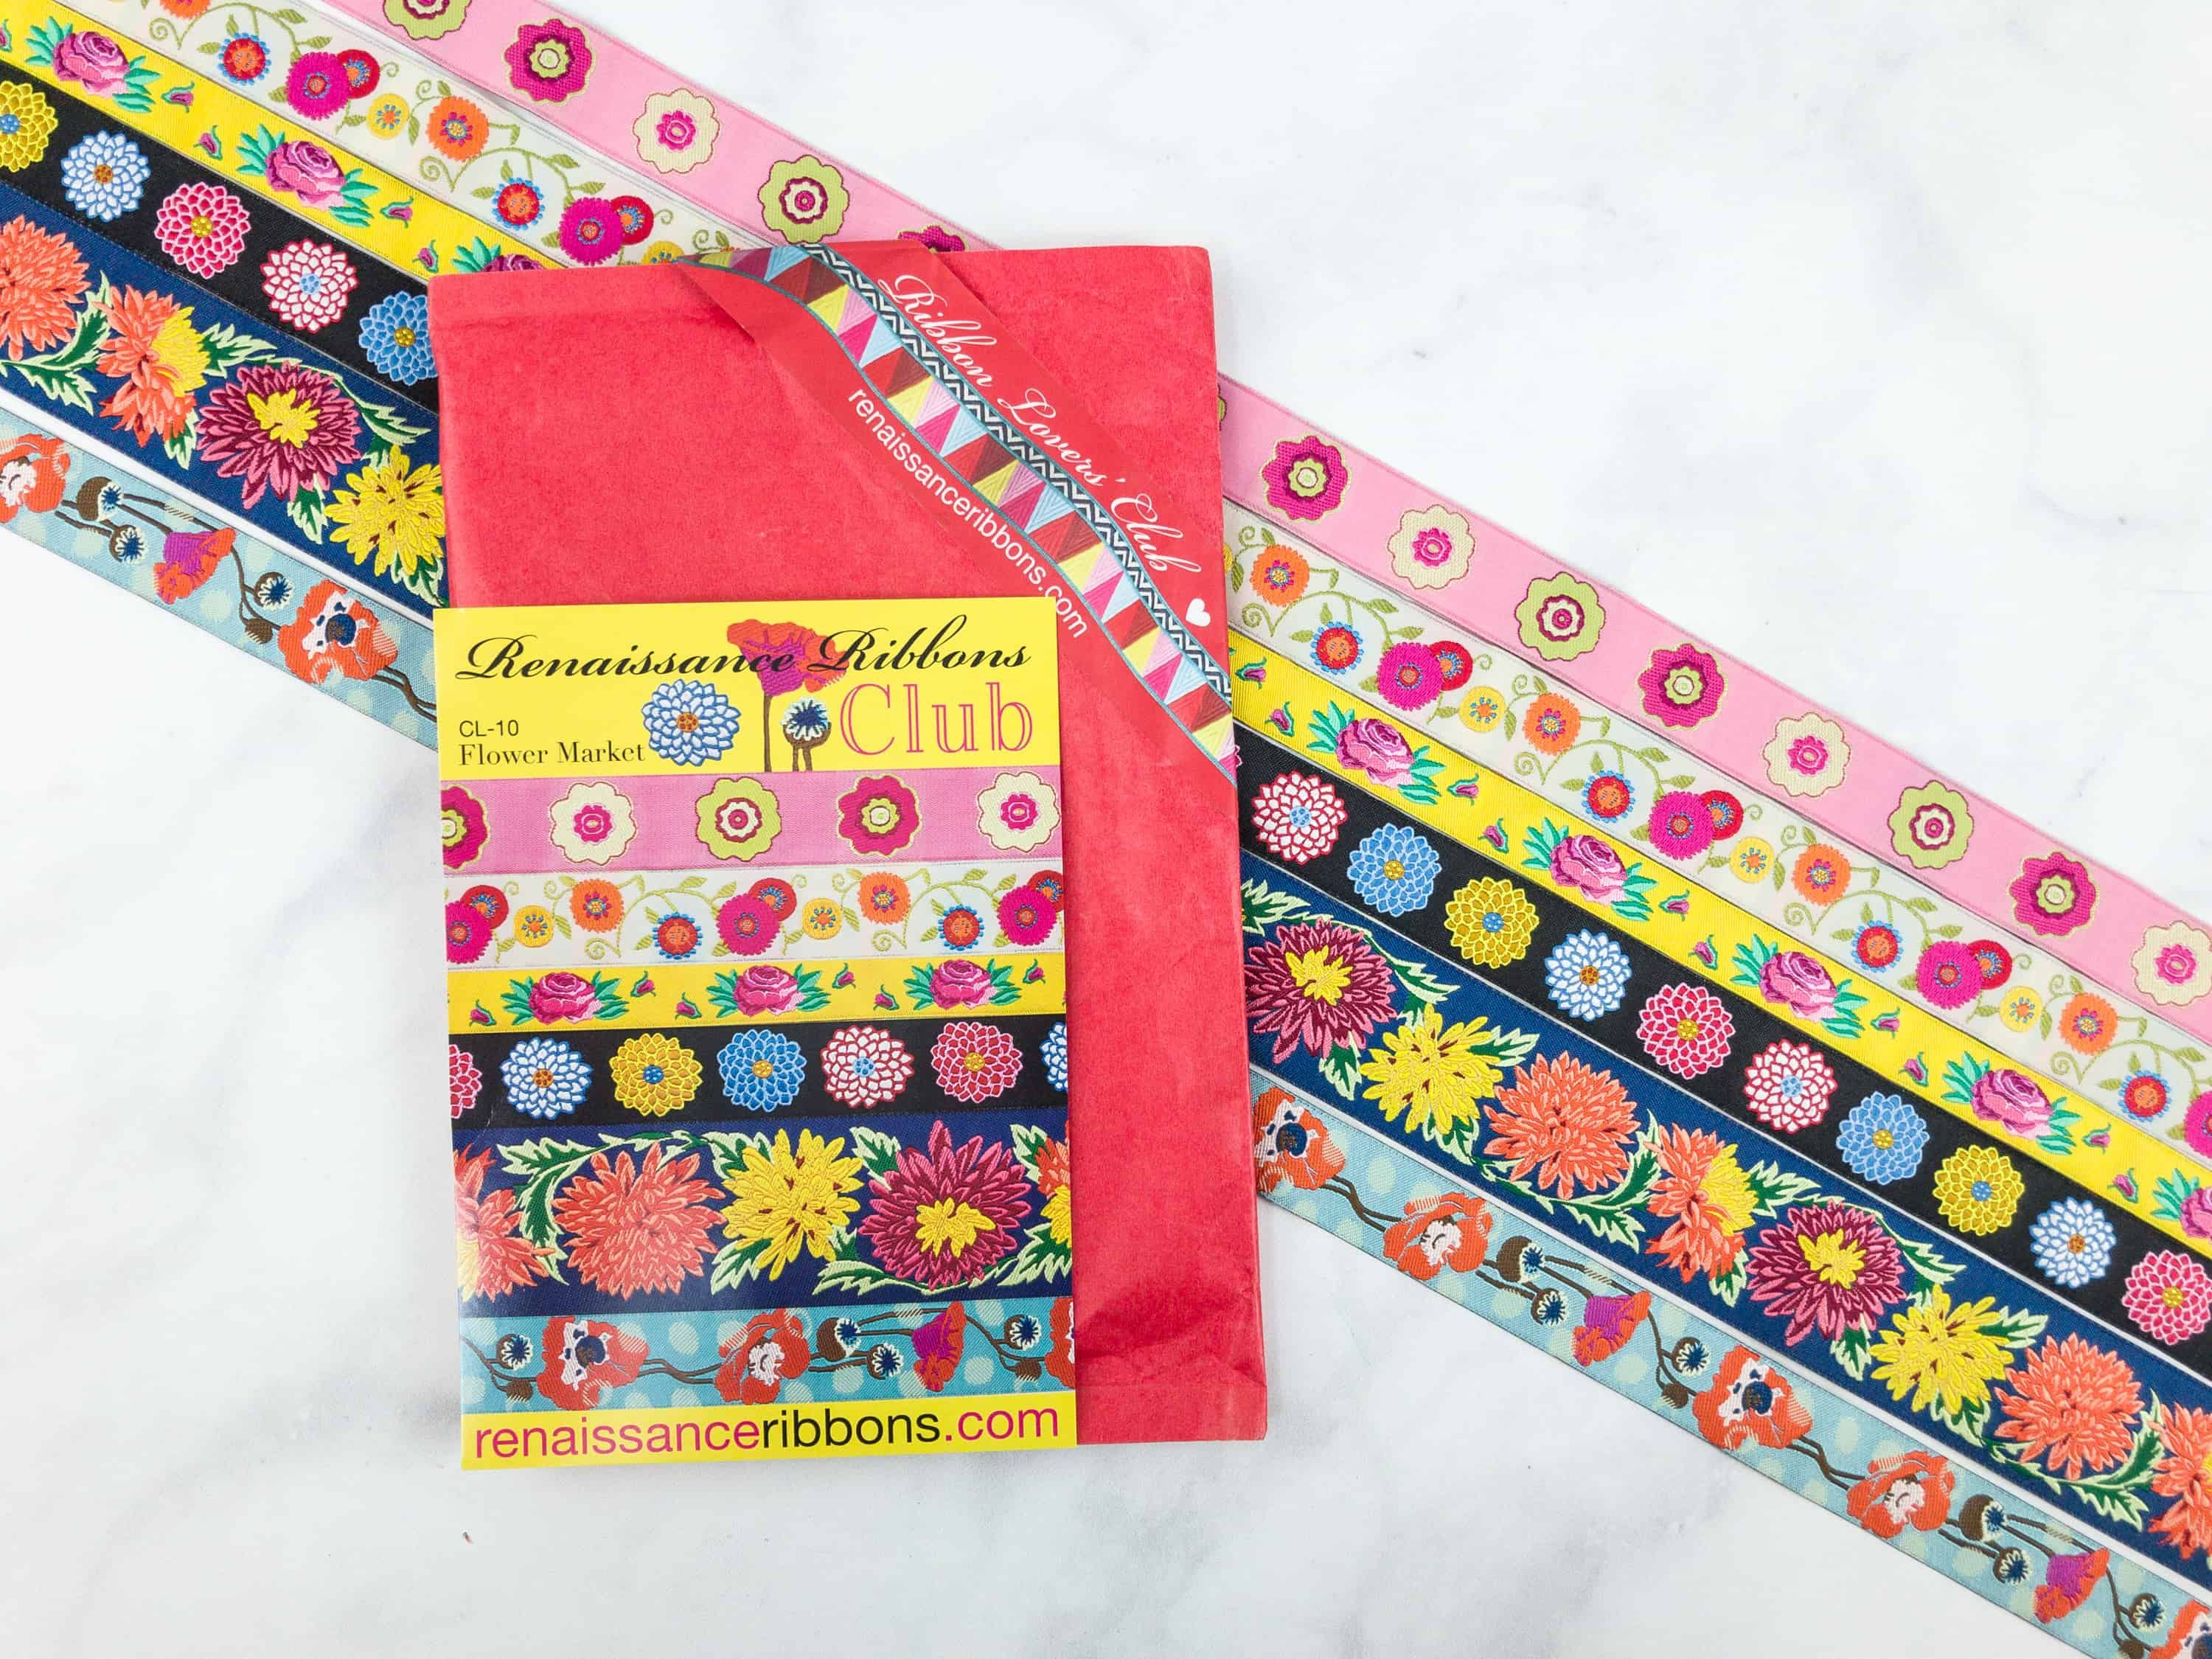 Colorful And Floral Themed Ribbons Are Included In Renaissance Ribbon